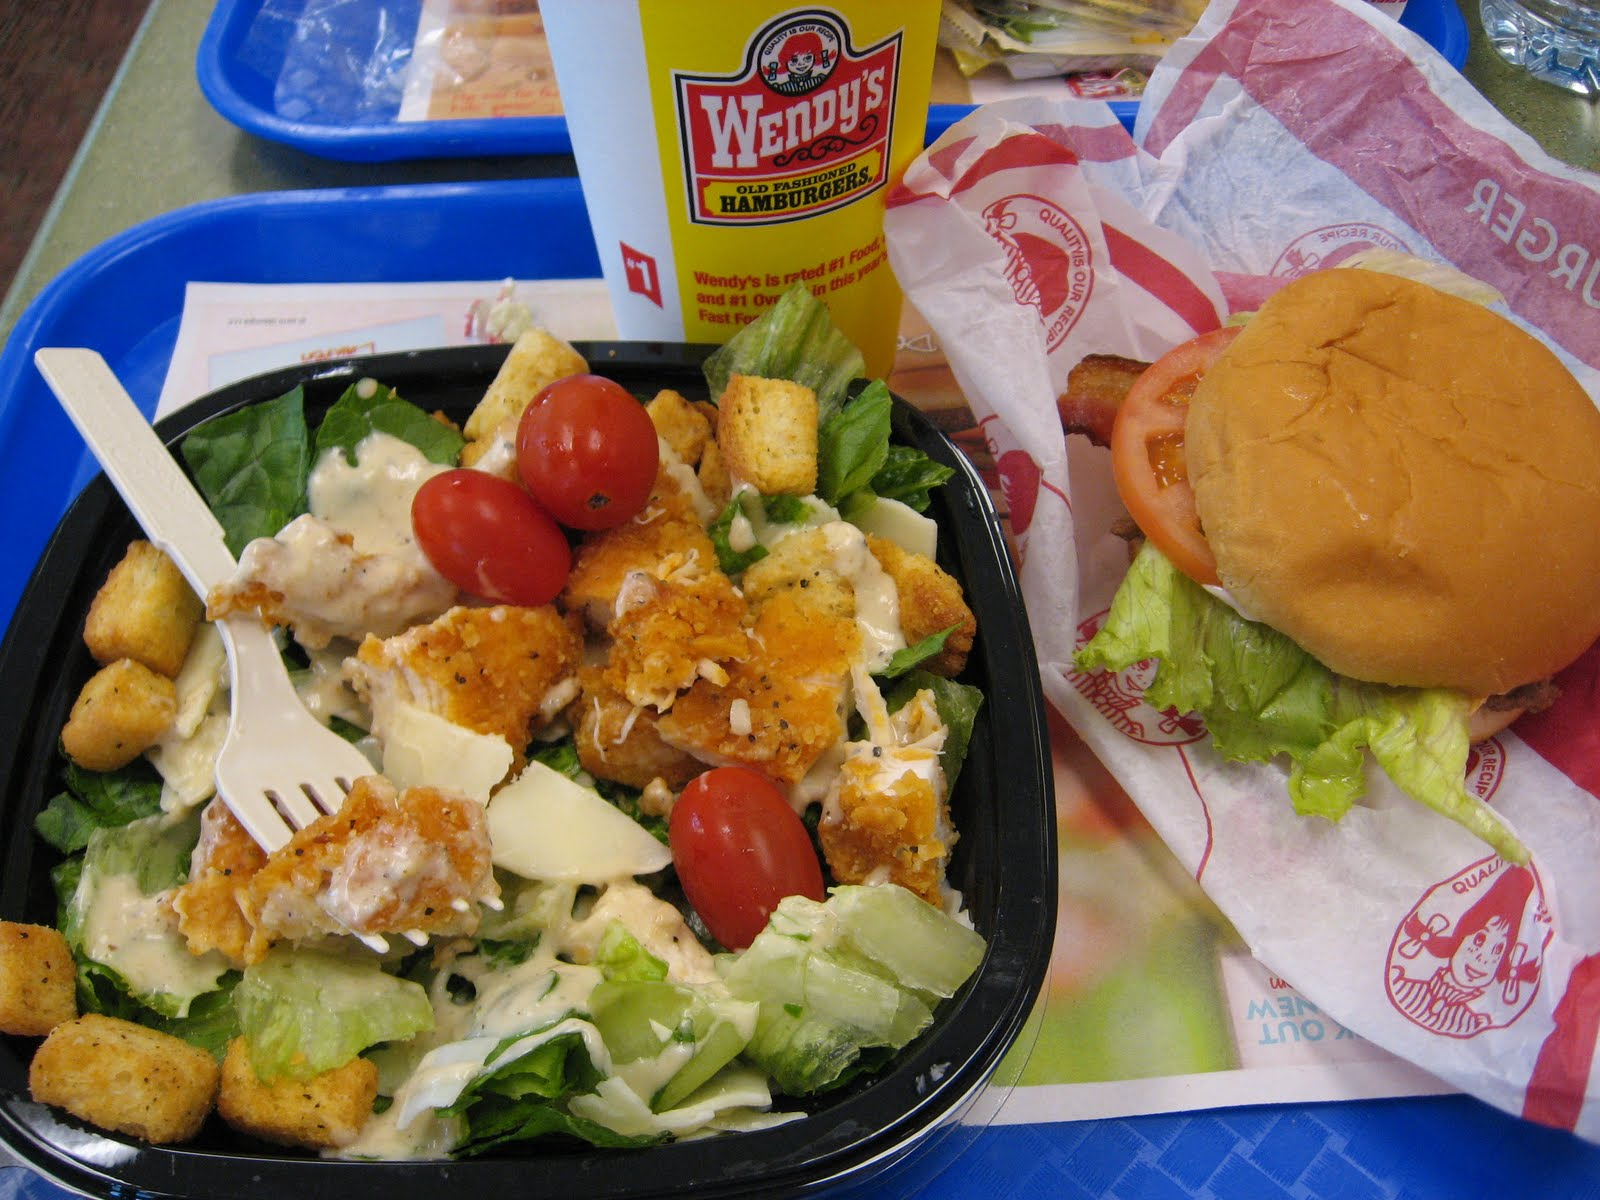 Latest prices and the entire menu of Wendy's. Taste its marked hamburgers, chicken sandwiches, French fries and beverages. Find your favorite at Wendy's. Taste its marked hamburgers, chicken sandwiches, French fries and beverages/5().